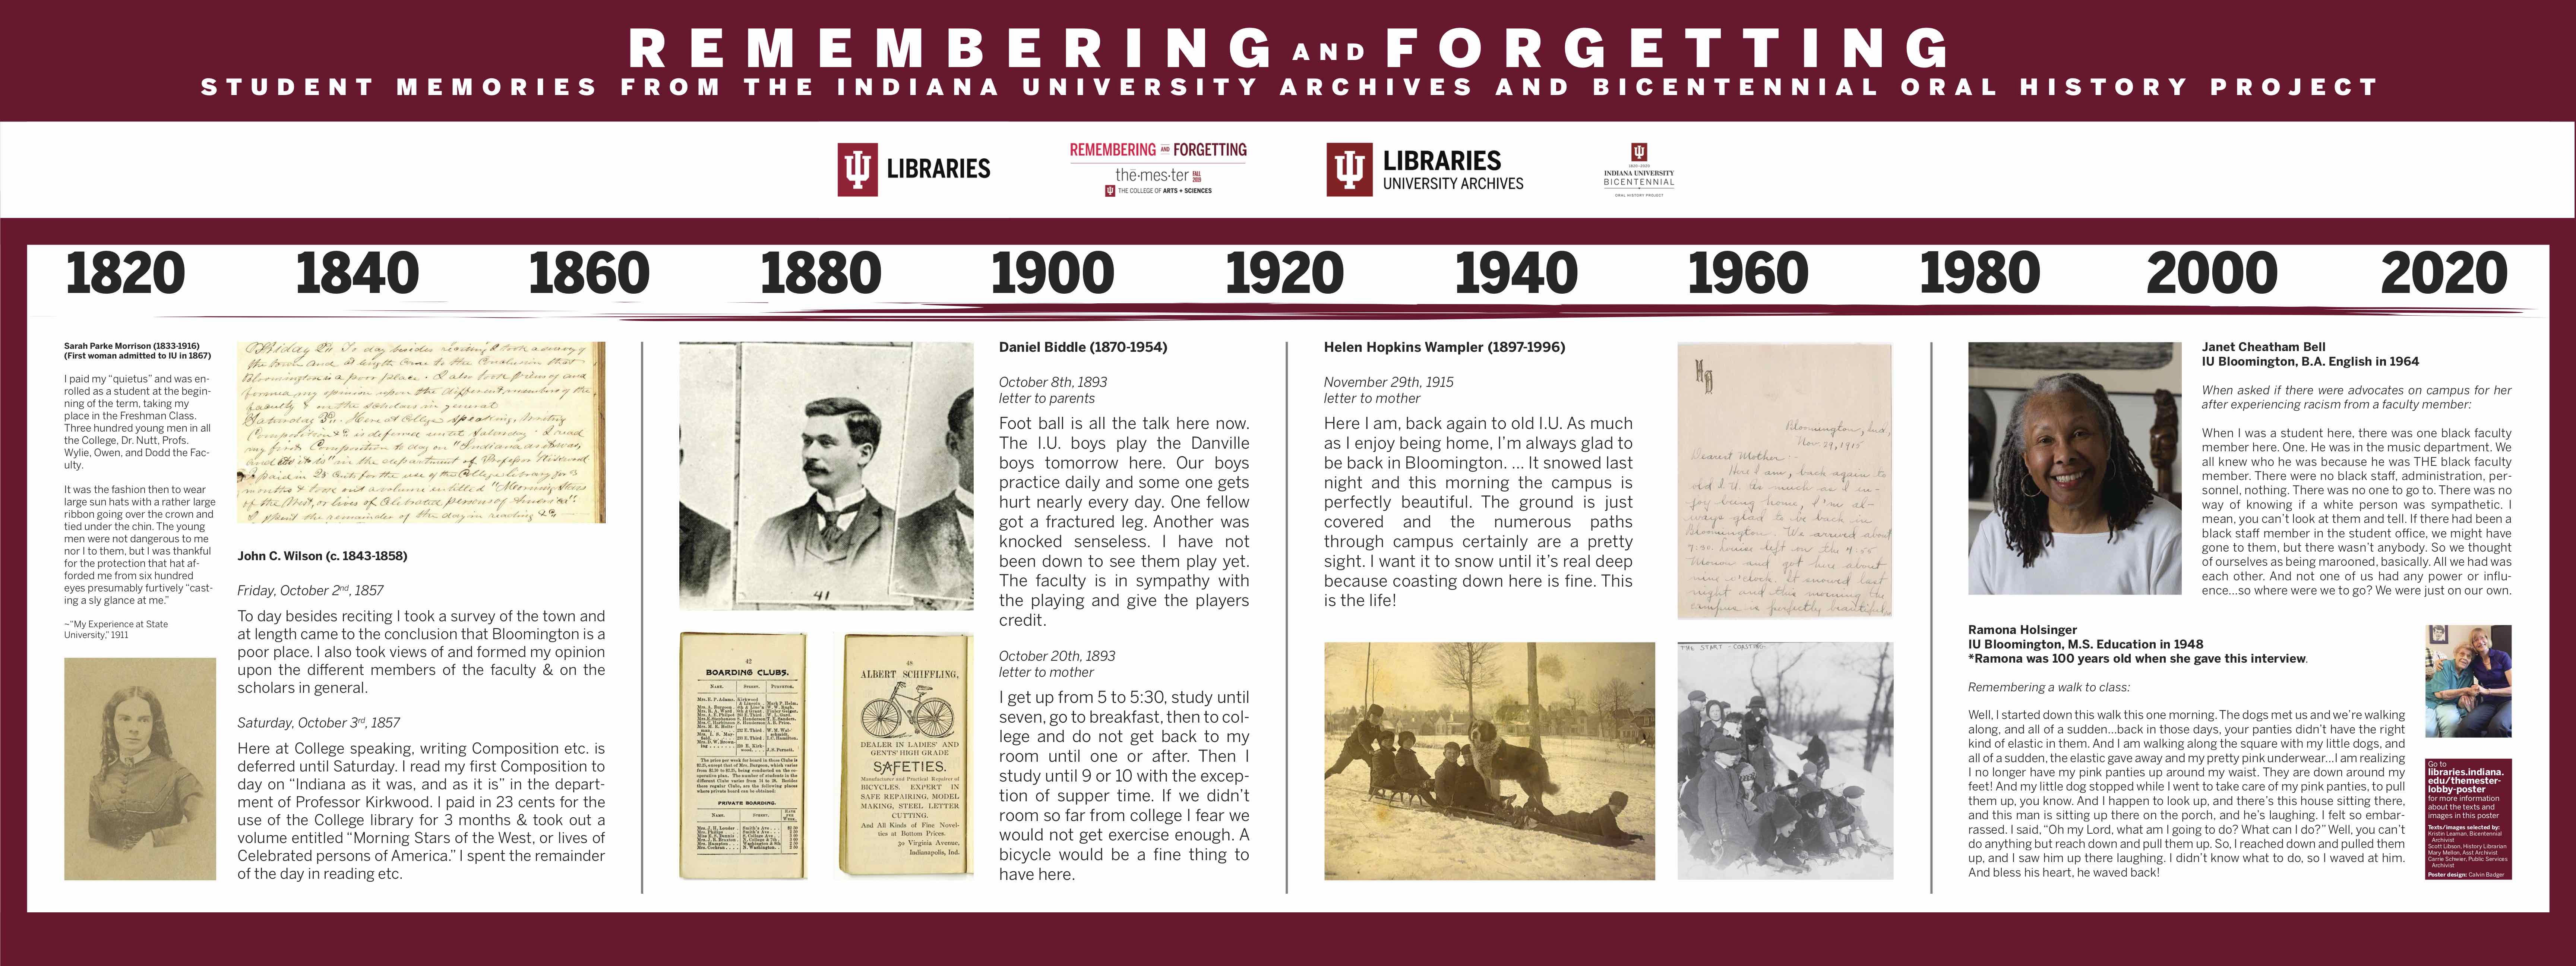 Themester poster currently in the Wells Library lobby with images and texts recalling student experiences at IU